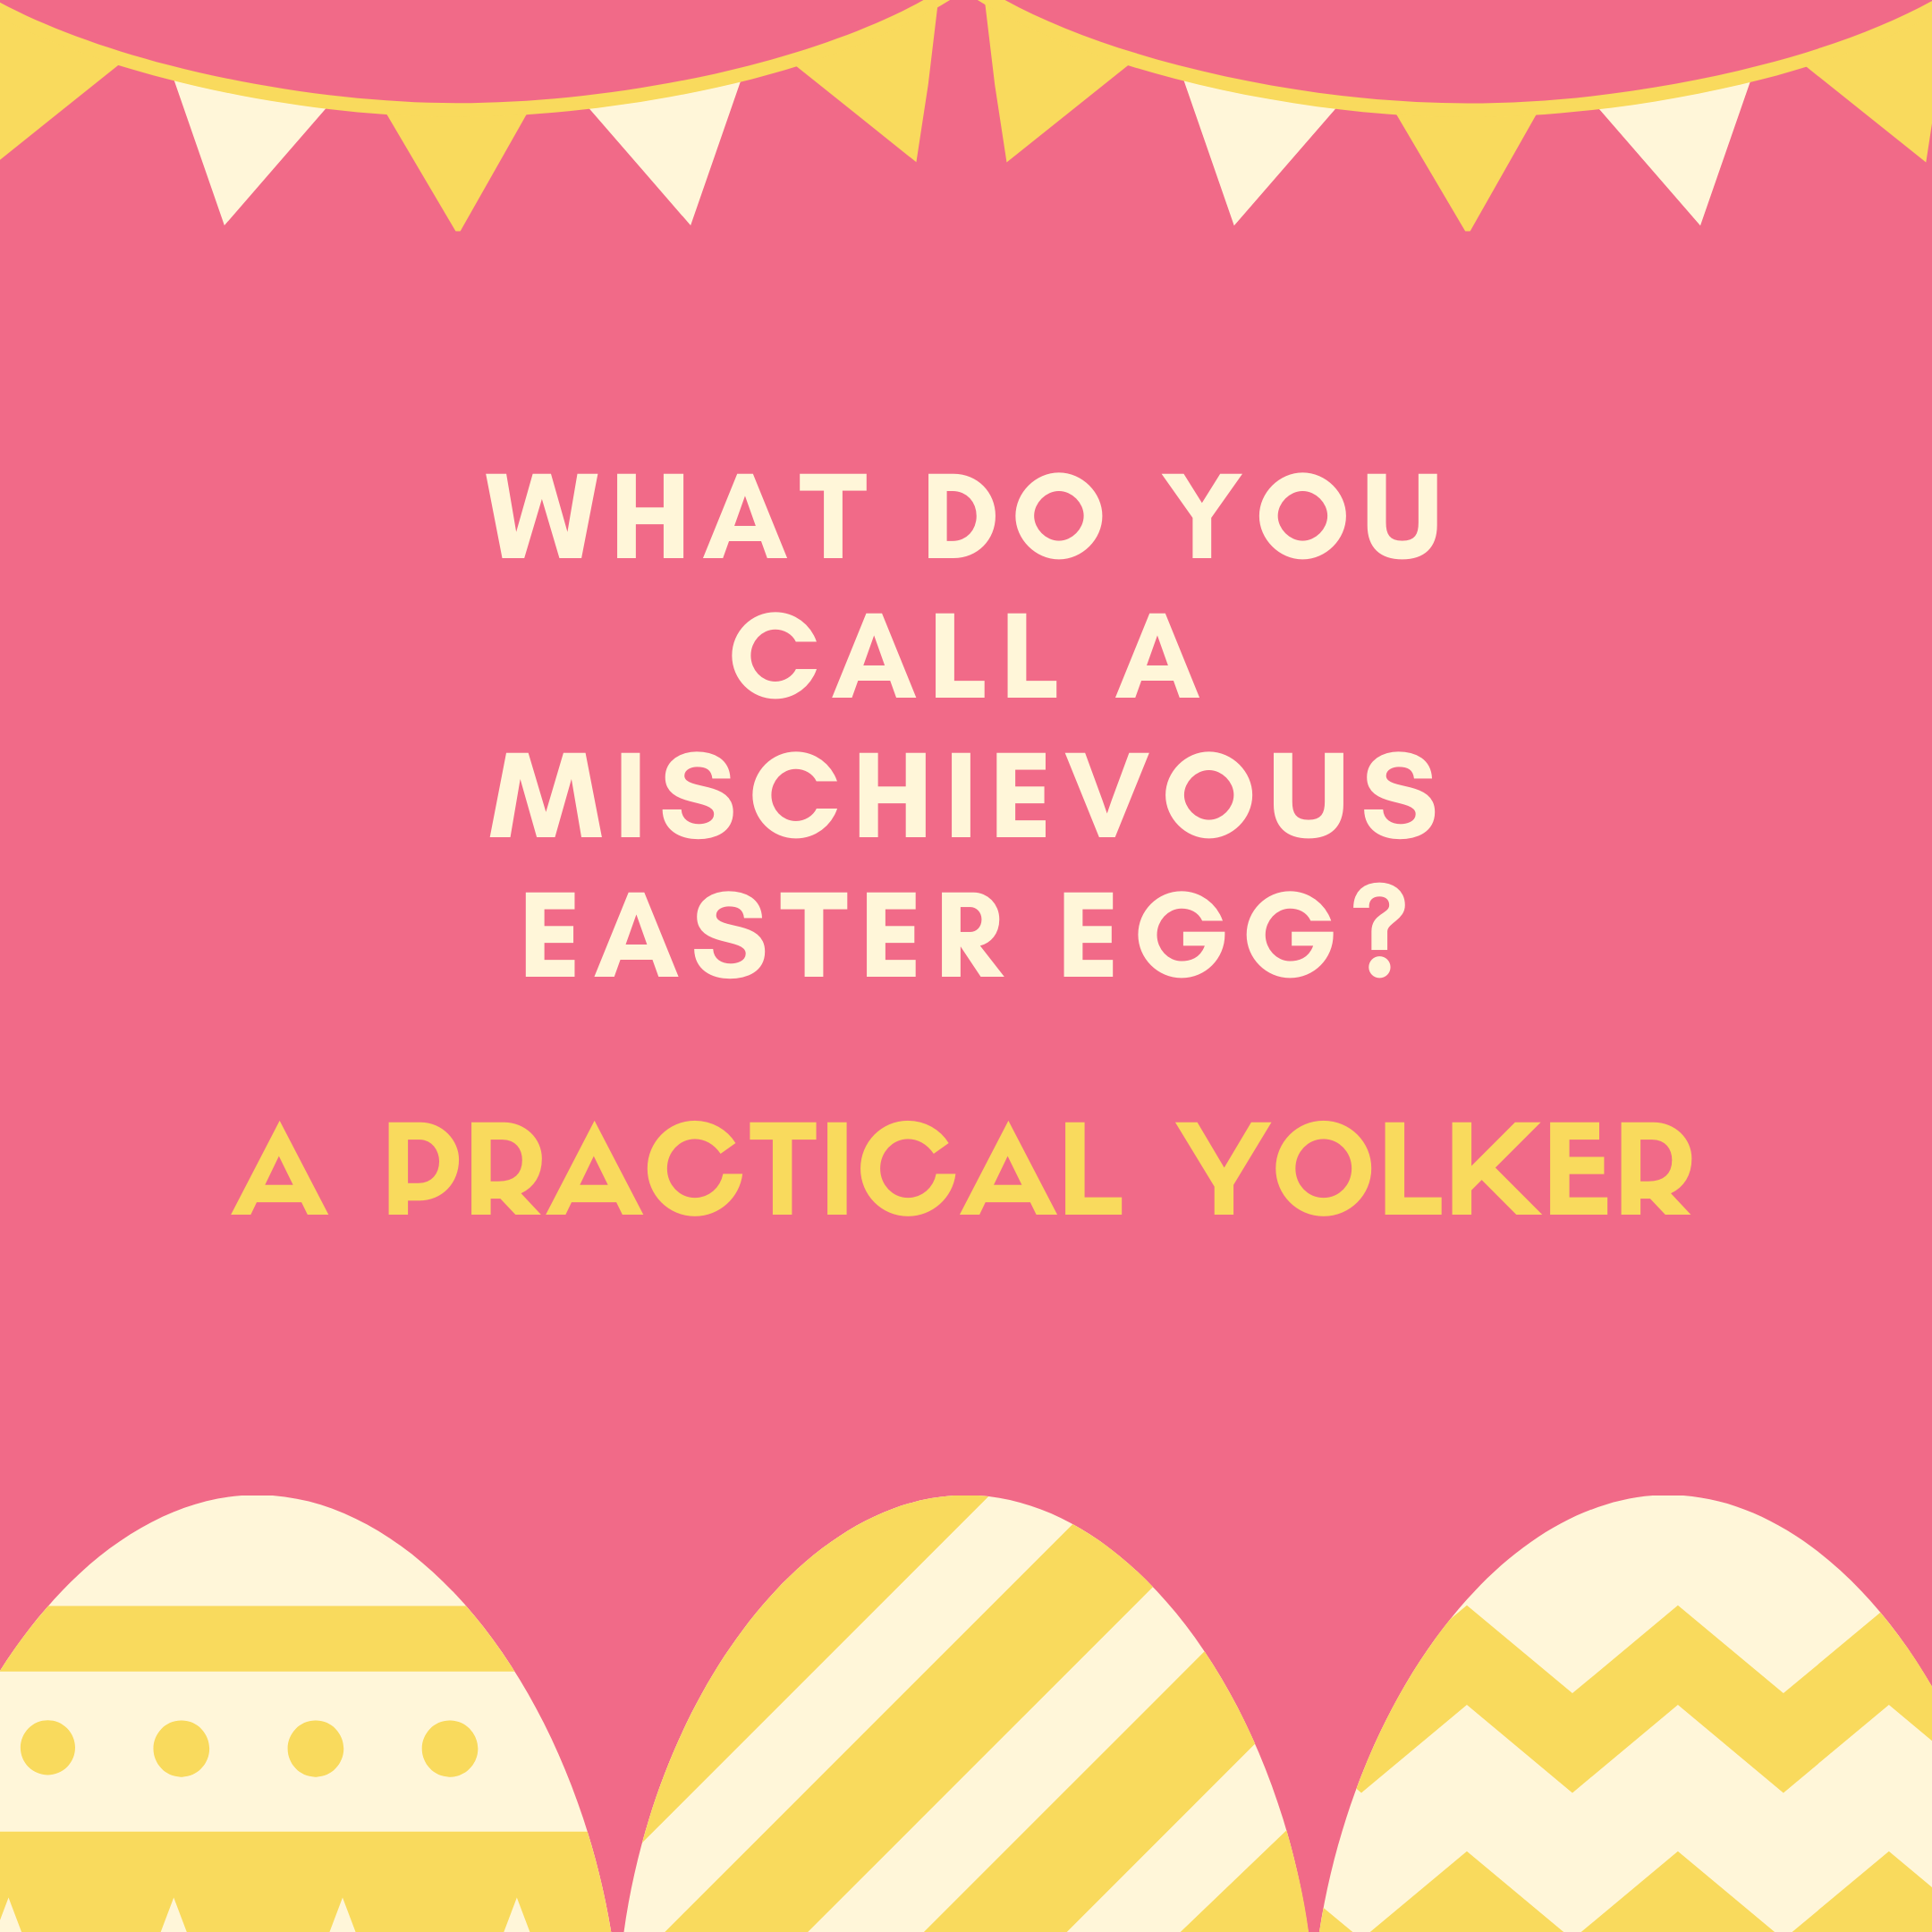 What do you call a mischievous Easter egg? A practical yolker